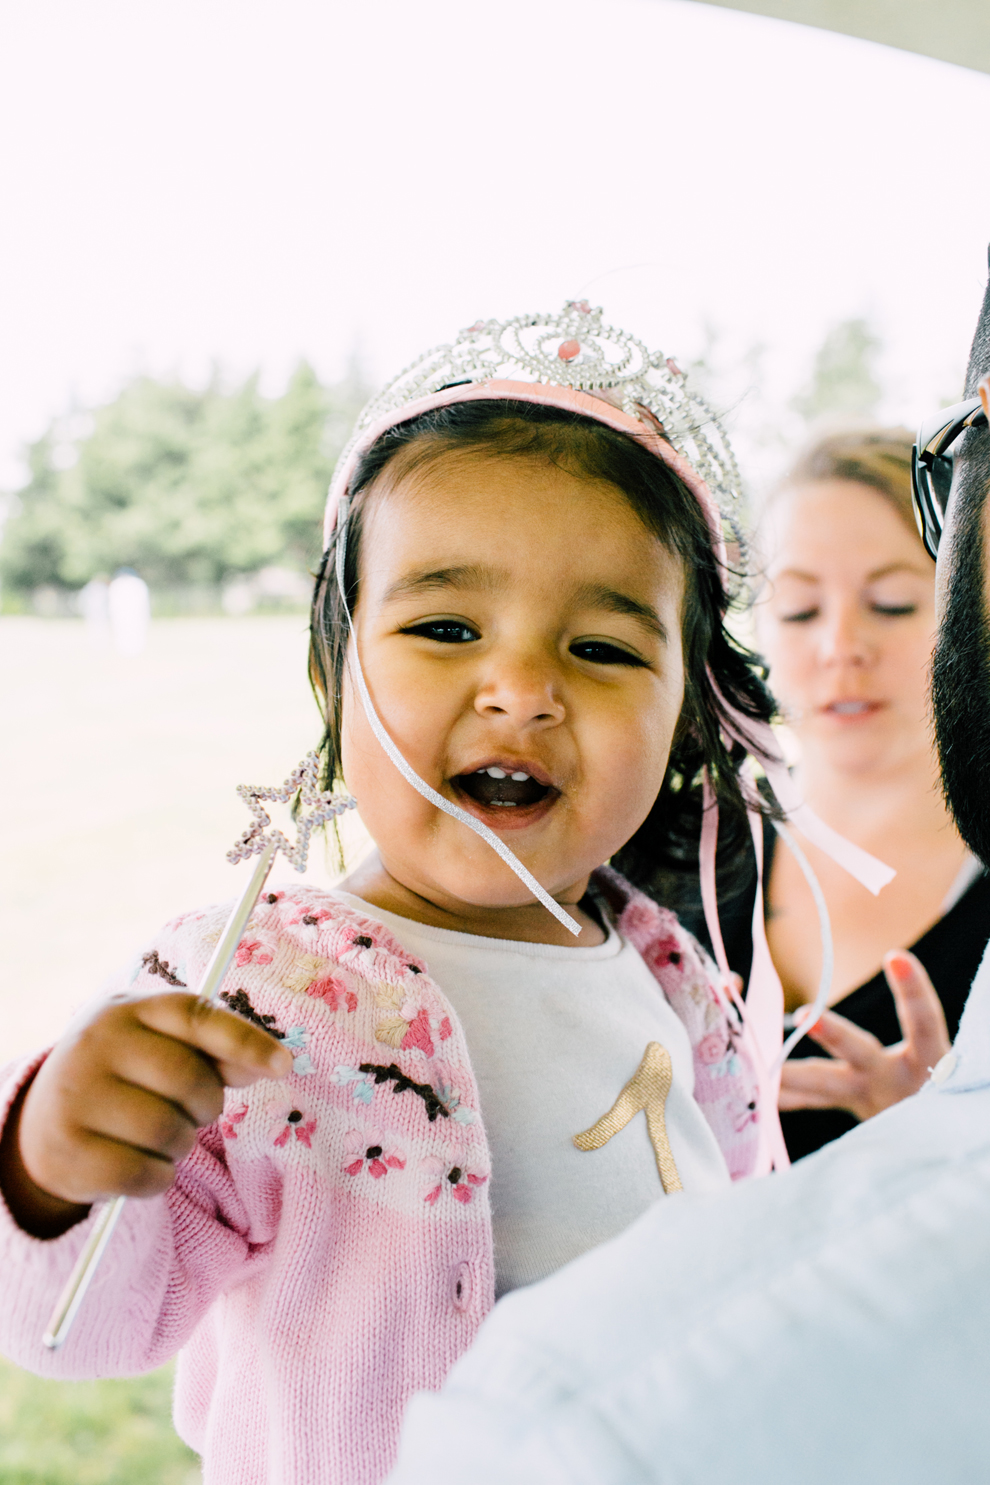 037-one-year-birthday-party-event-photography-lynden-bellingham-katheryn-moran-mira.jpg